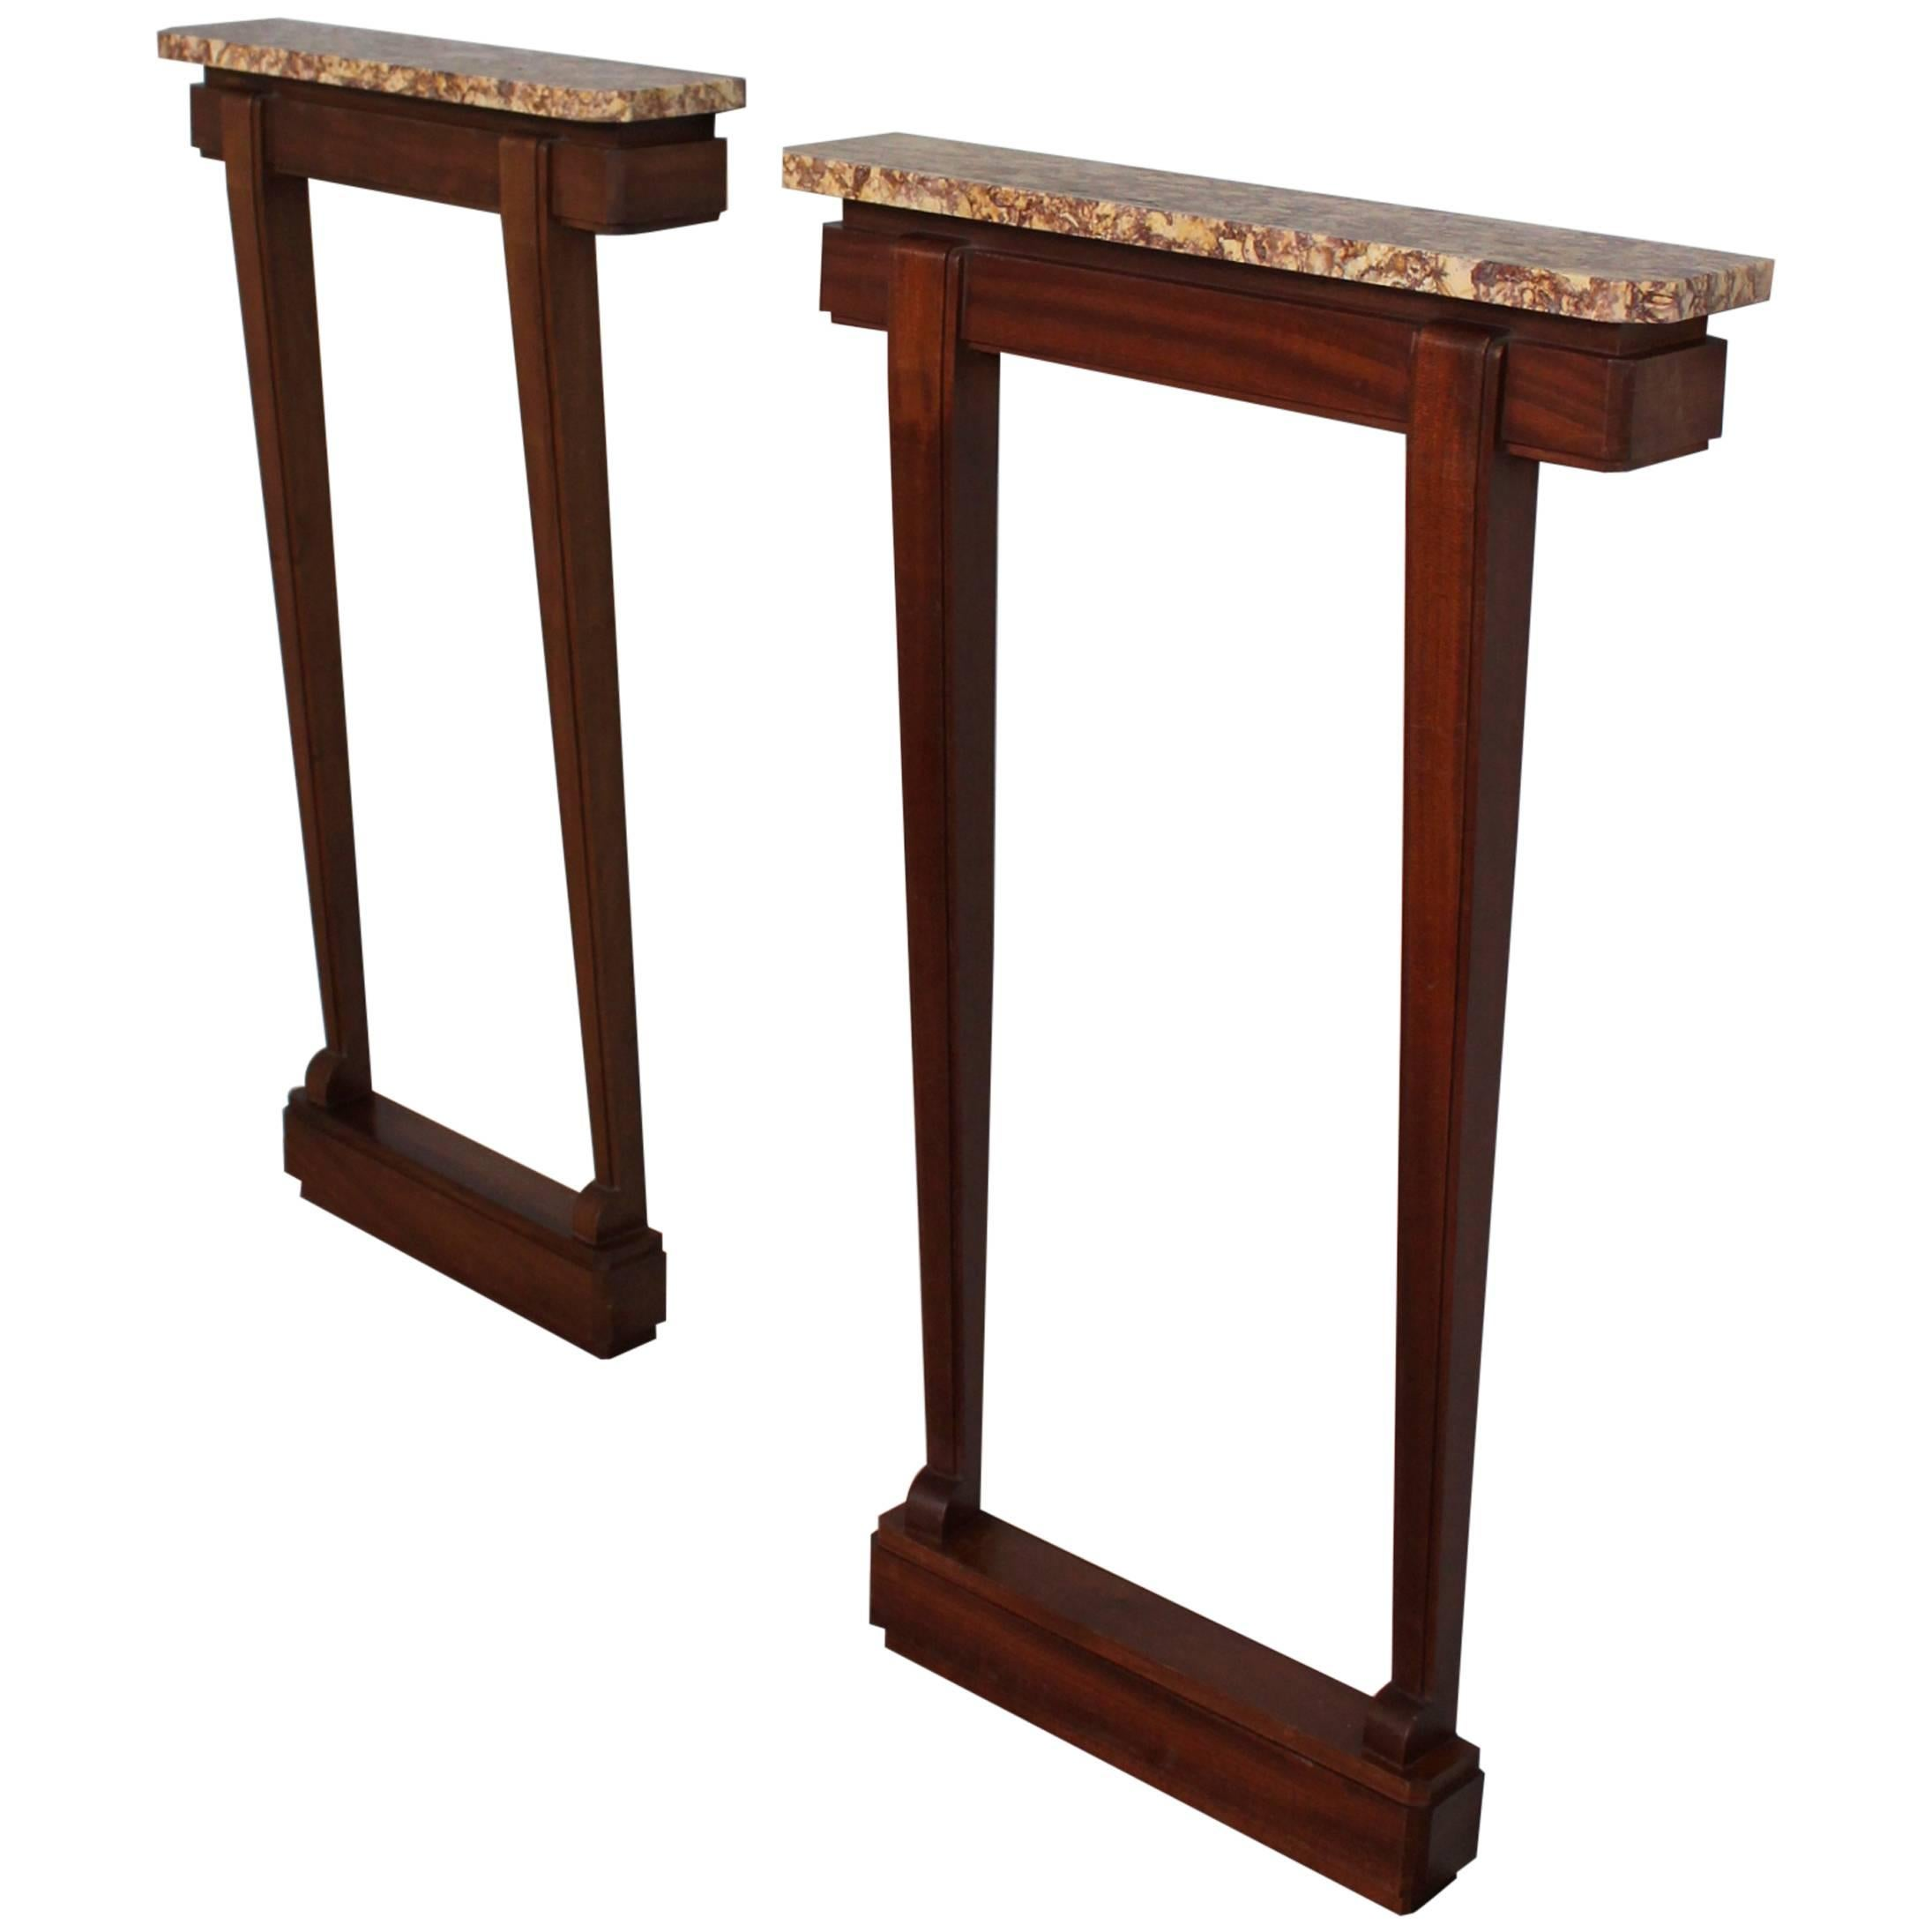 A Pair of Fine French Art Deco Mahogany and Marble Consoles